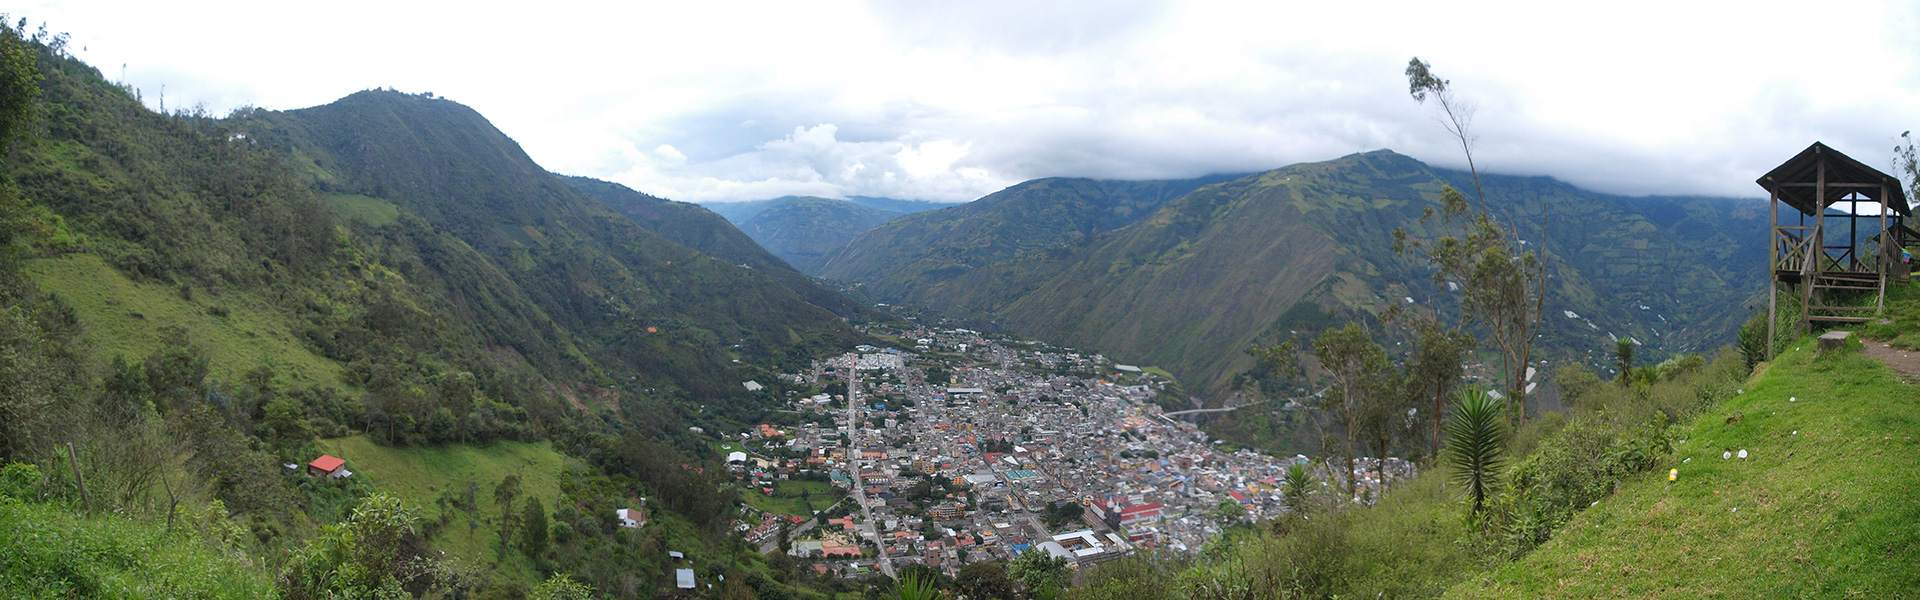 Ecuador Banos Beautiful Town